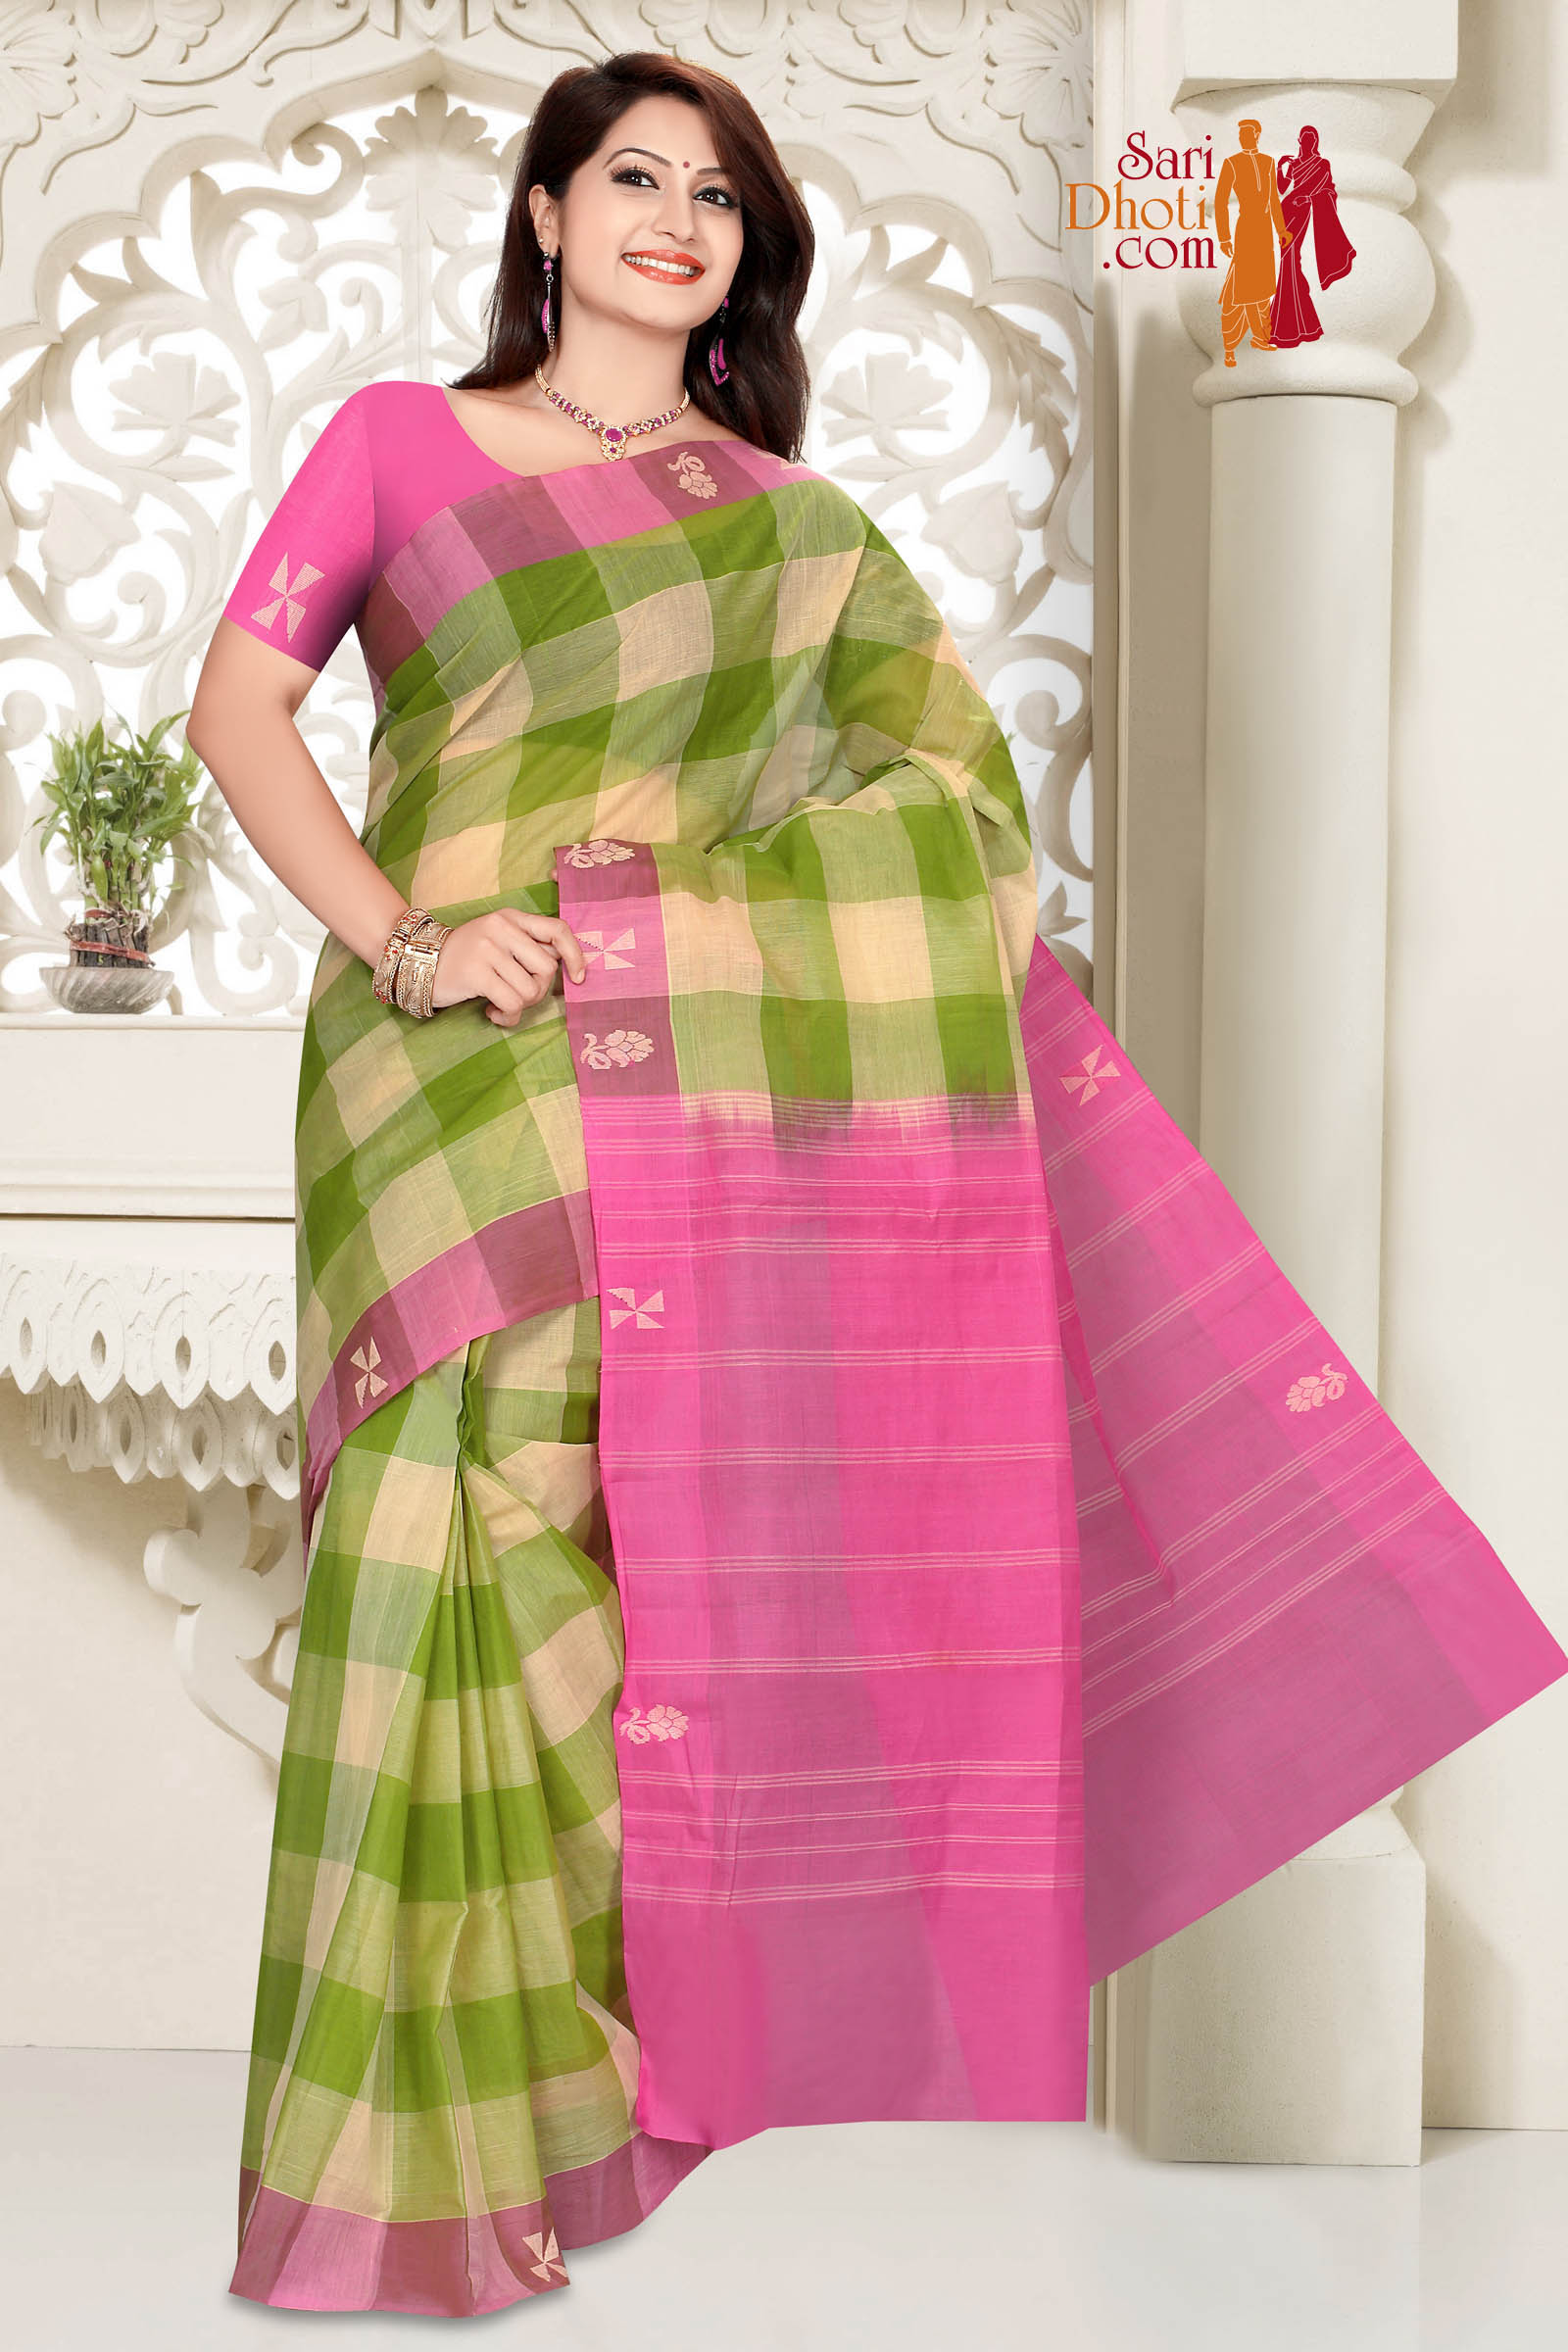 Kanchi Cotton 5493